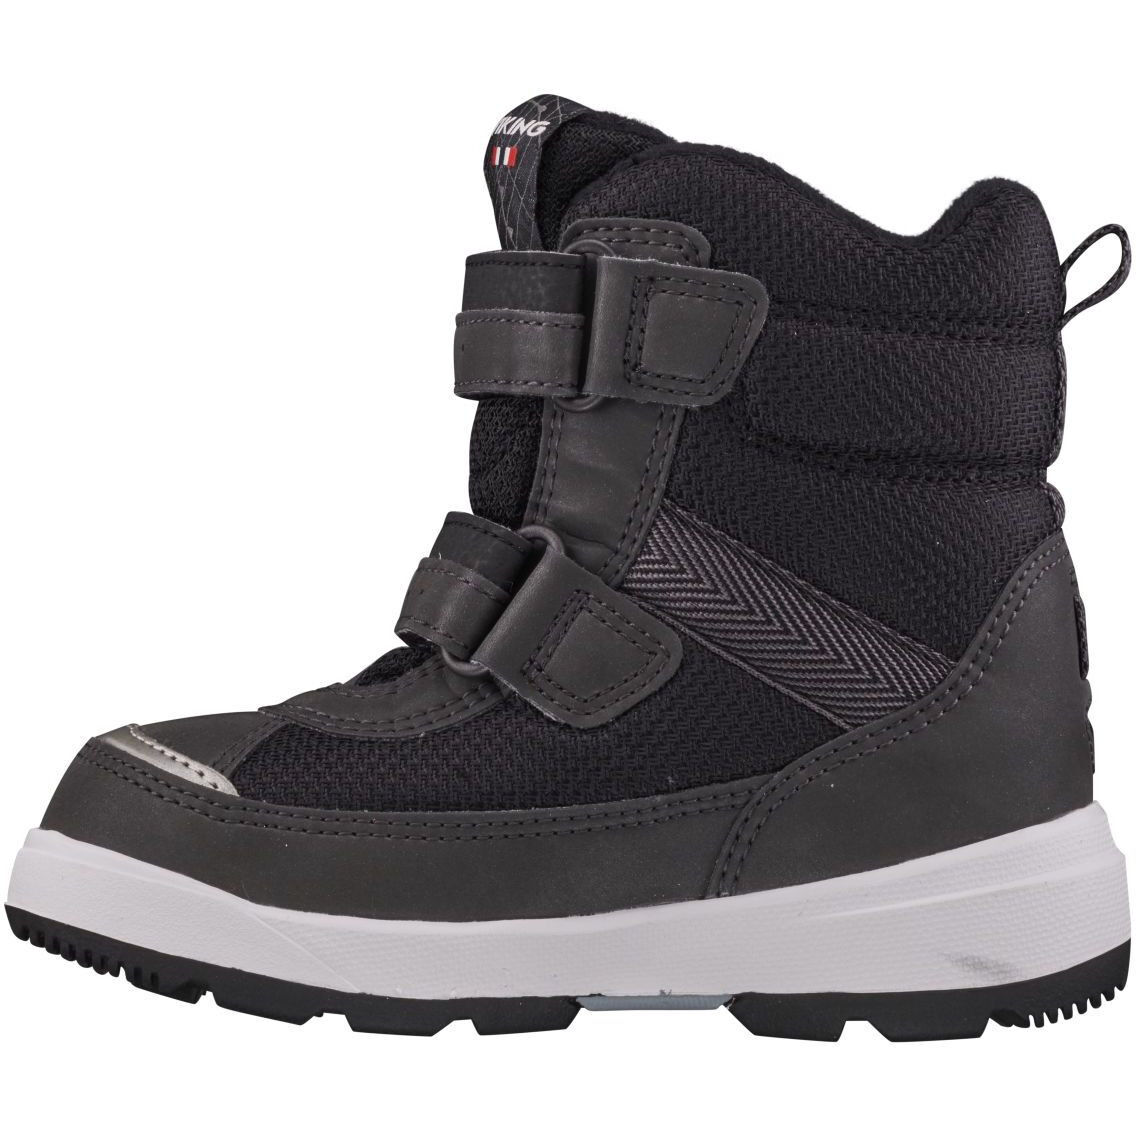 Viking Footwear Play II R GTX Boots Barn reflectiveblack